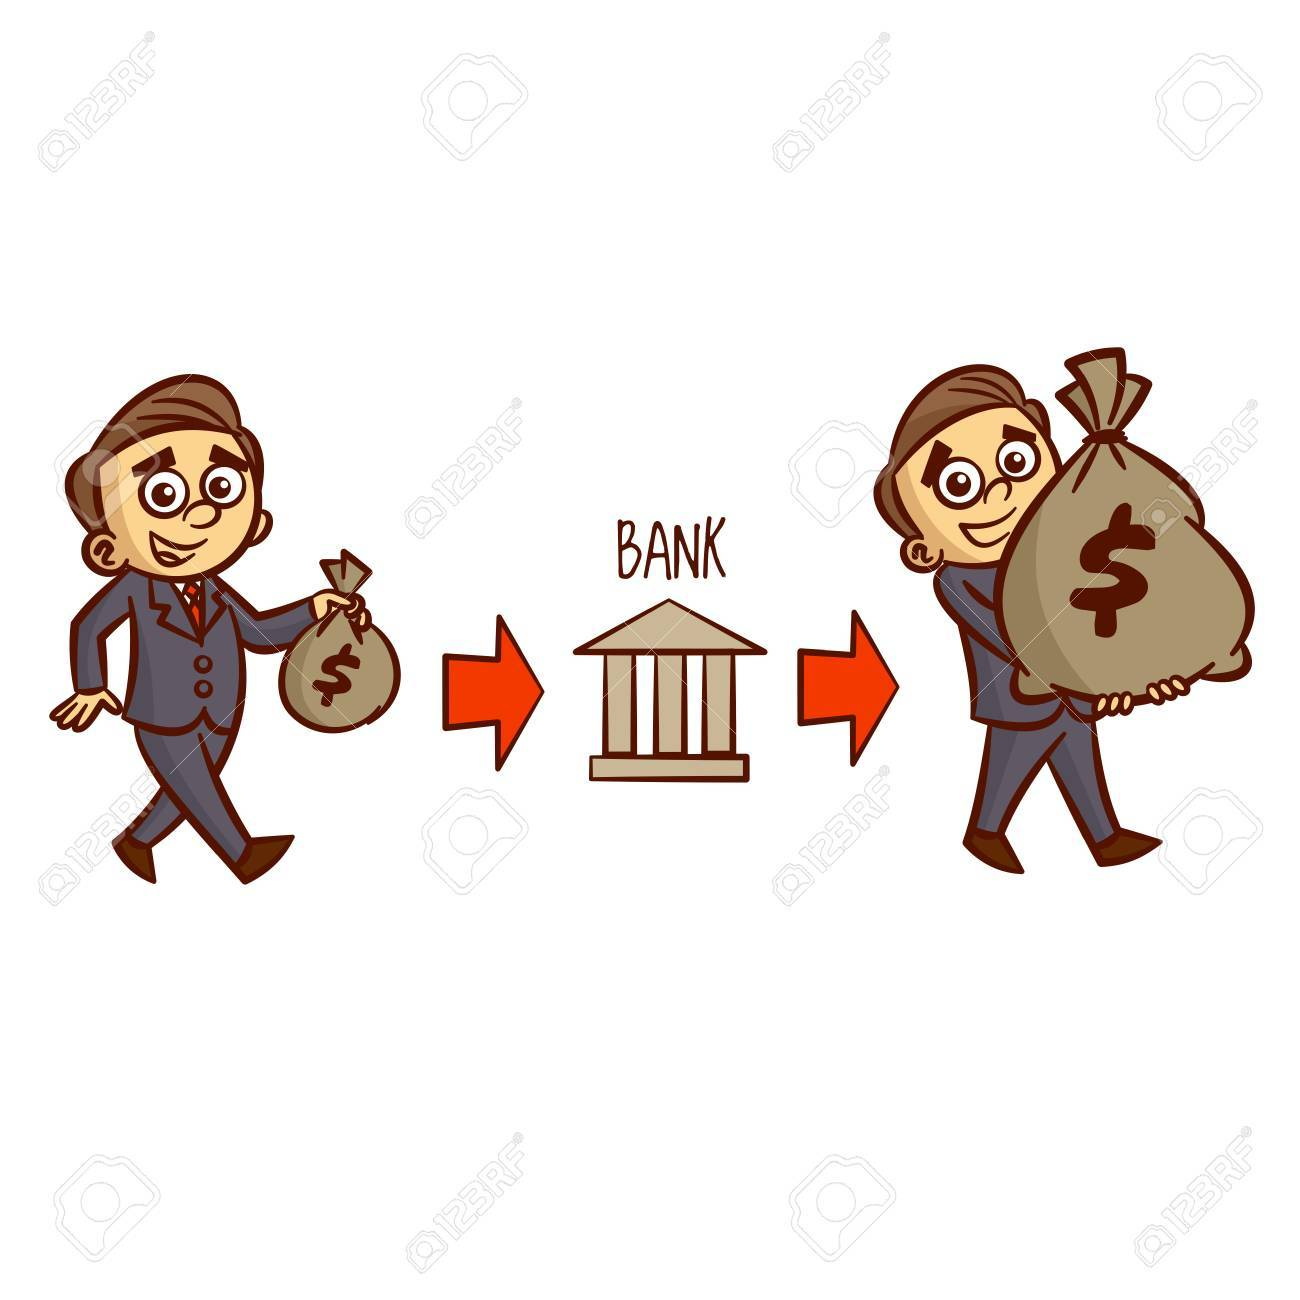 Income Clipart - Businessman Carries Money In The Bank And Receives Income Clipart ...